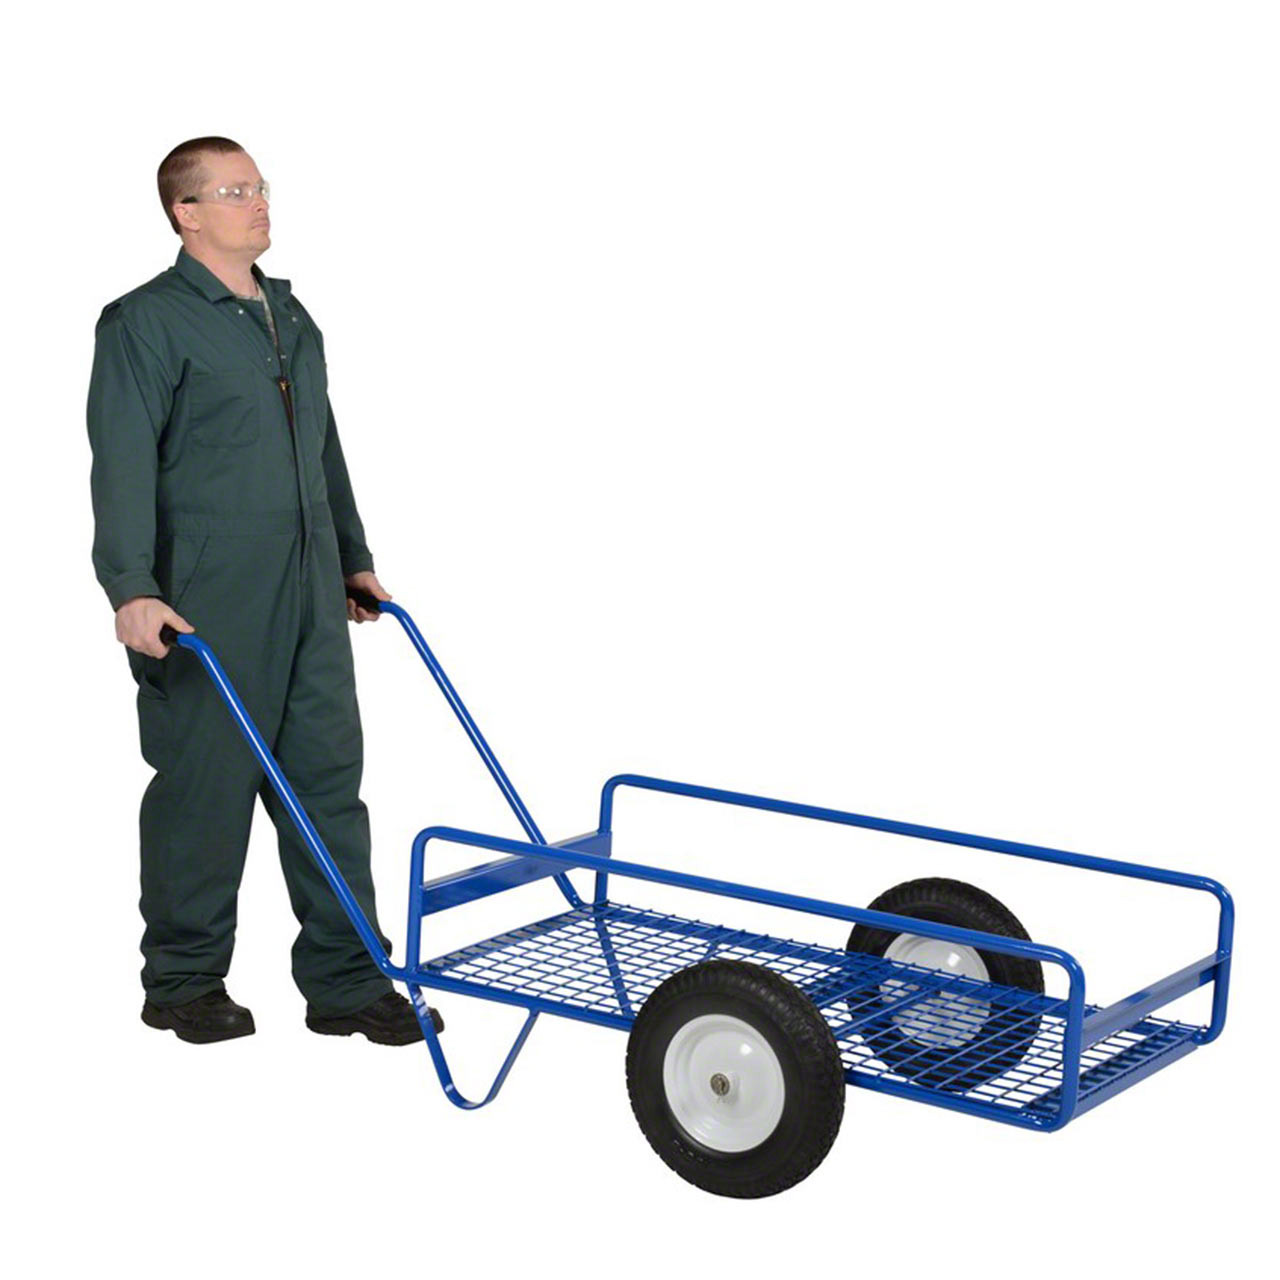 With a capacity of 500 lb., this tilting work cart will be able to move all your important loads